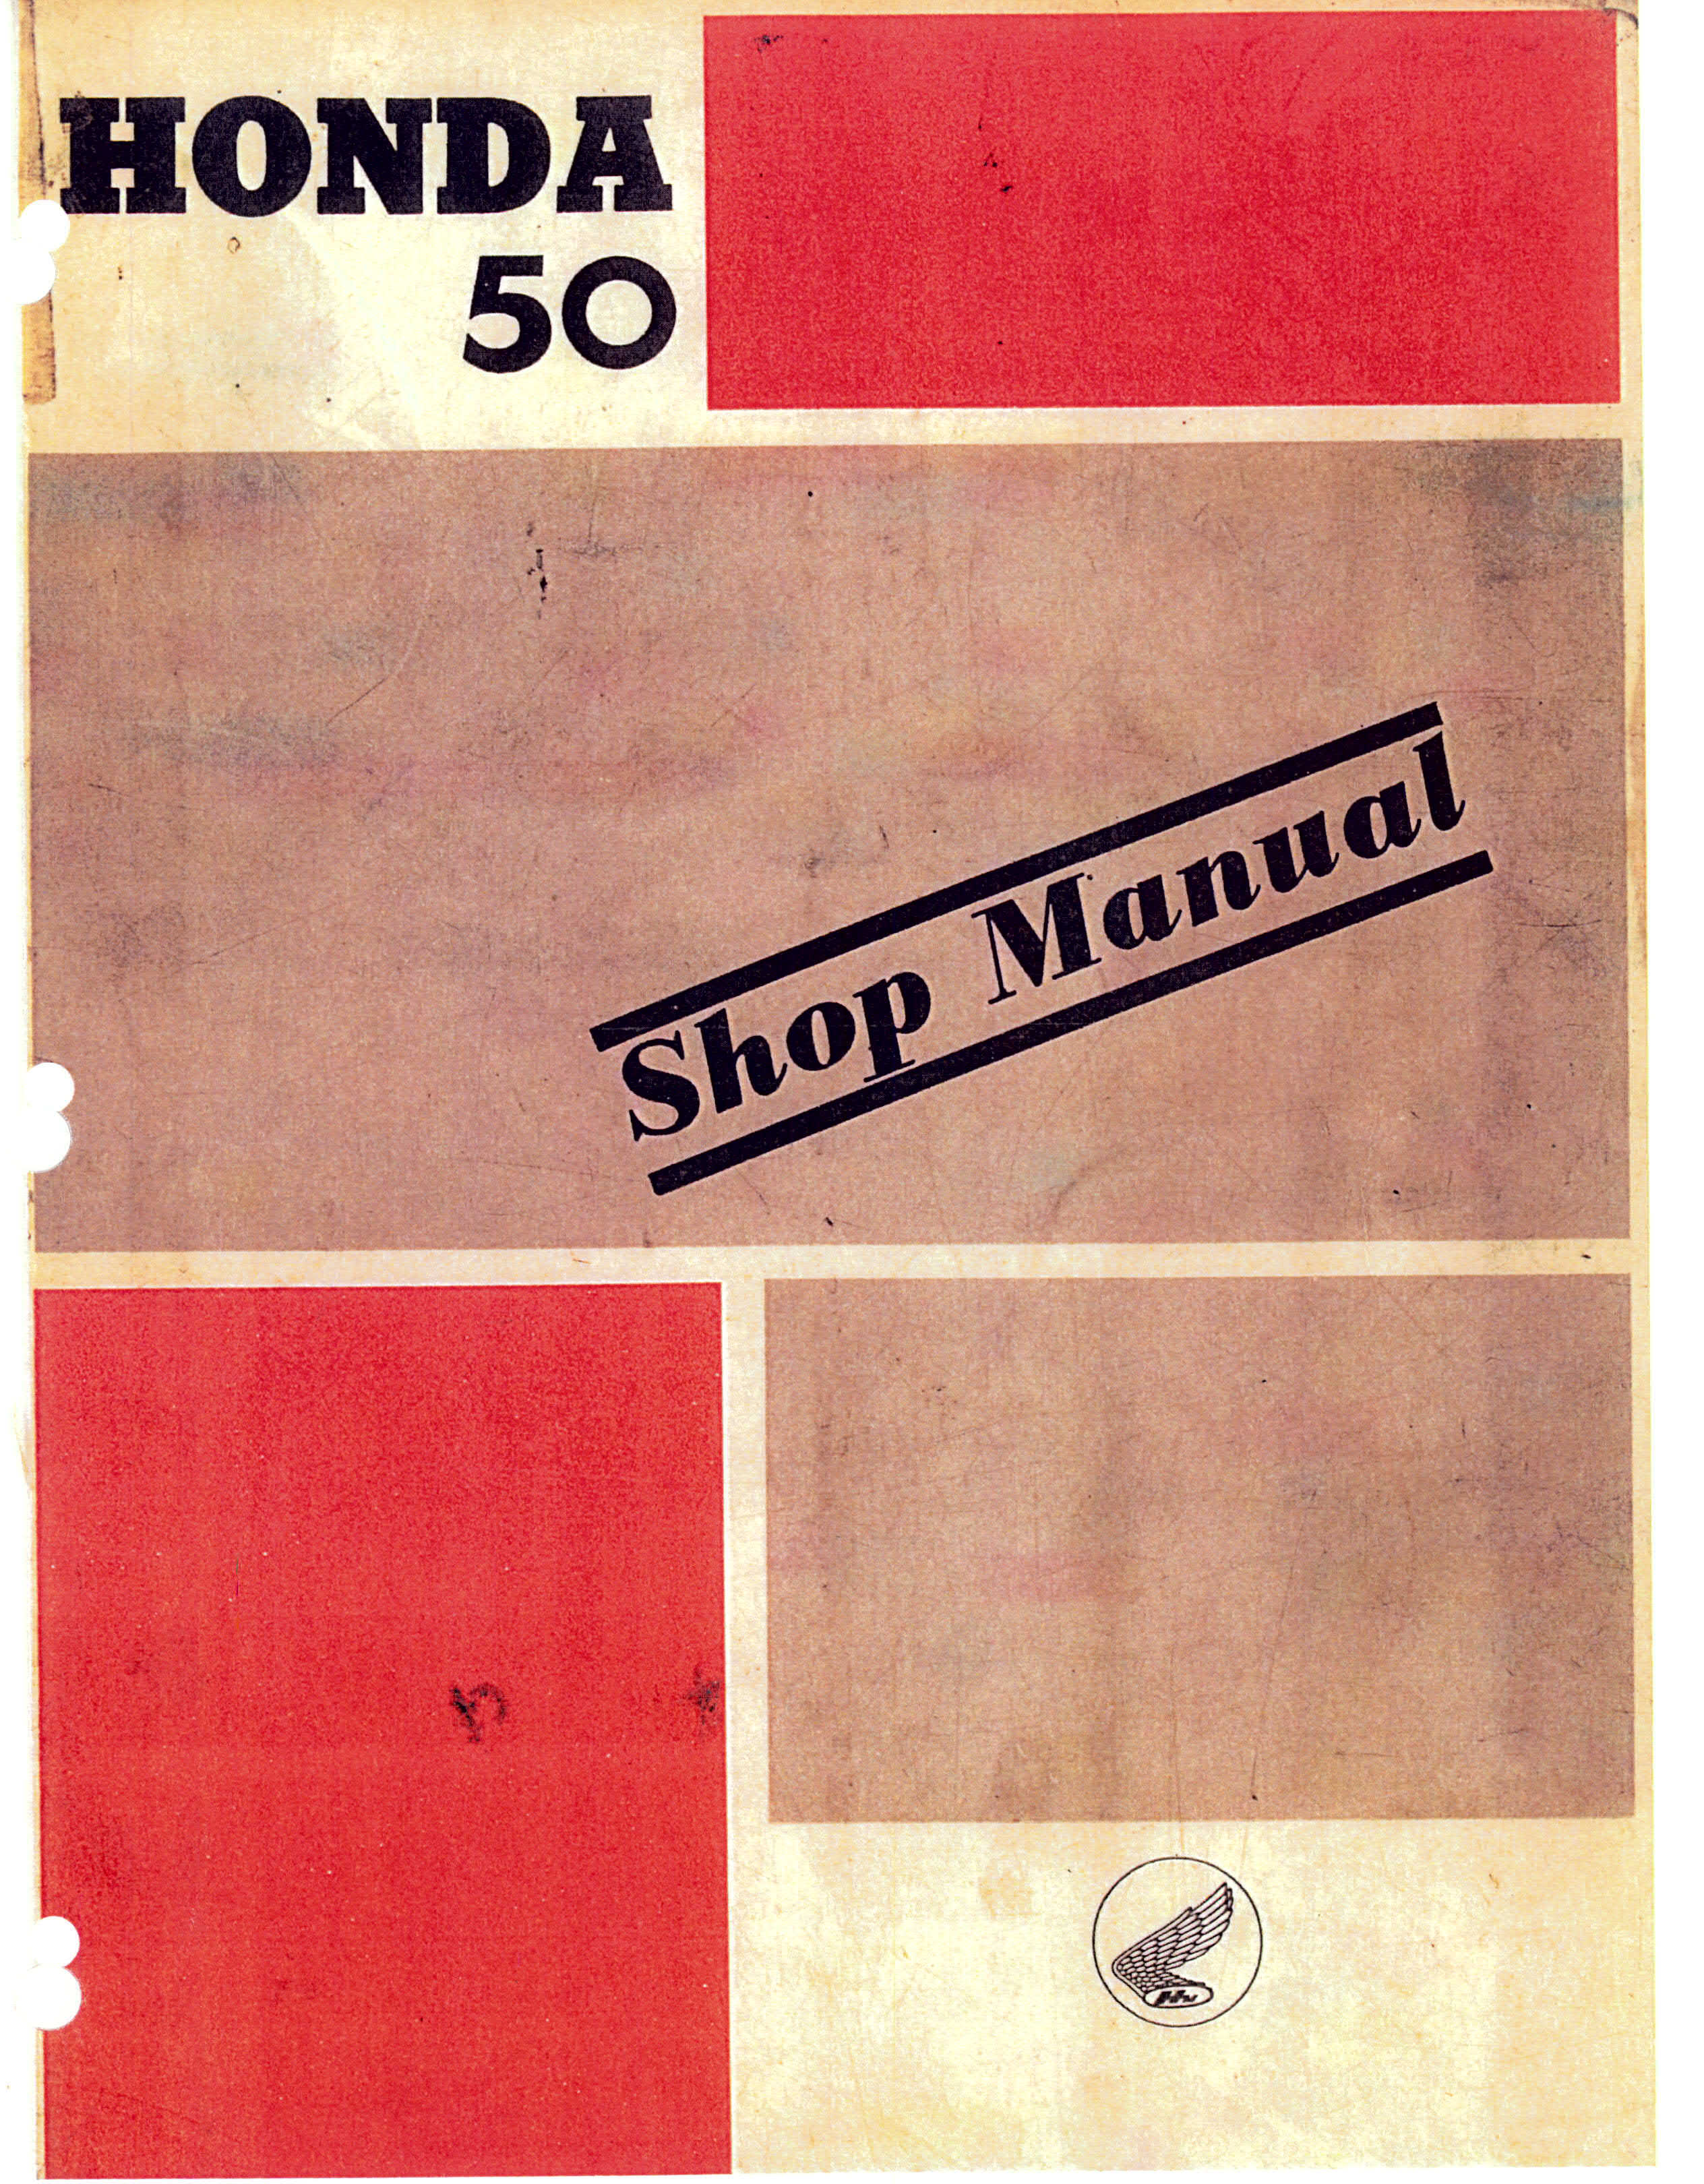 A very nice and clear workshop manual for the Honda 50 or Honda C100 from  1961.